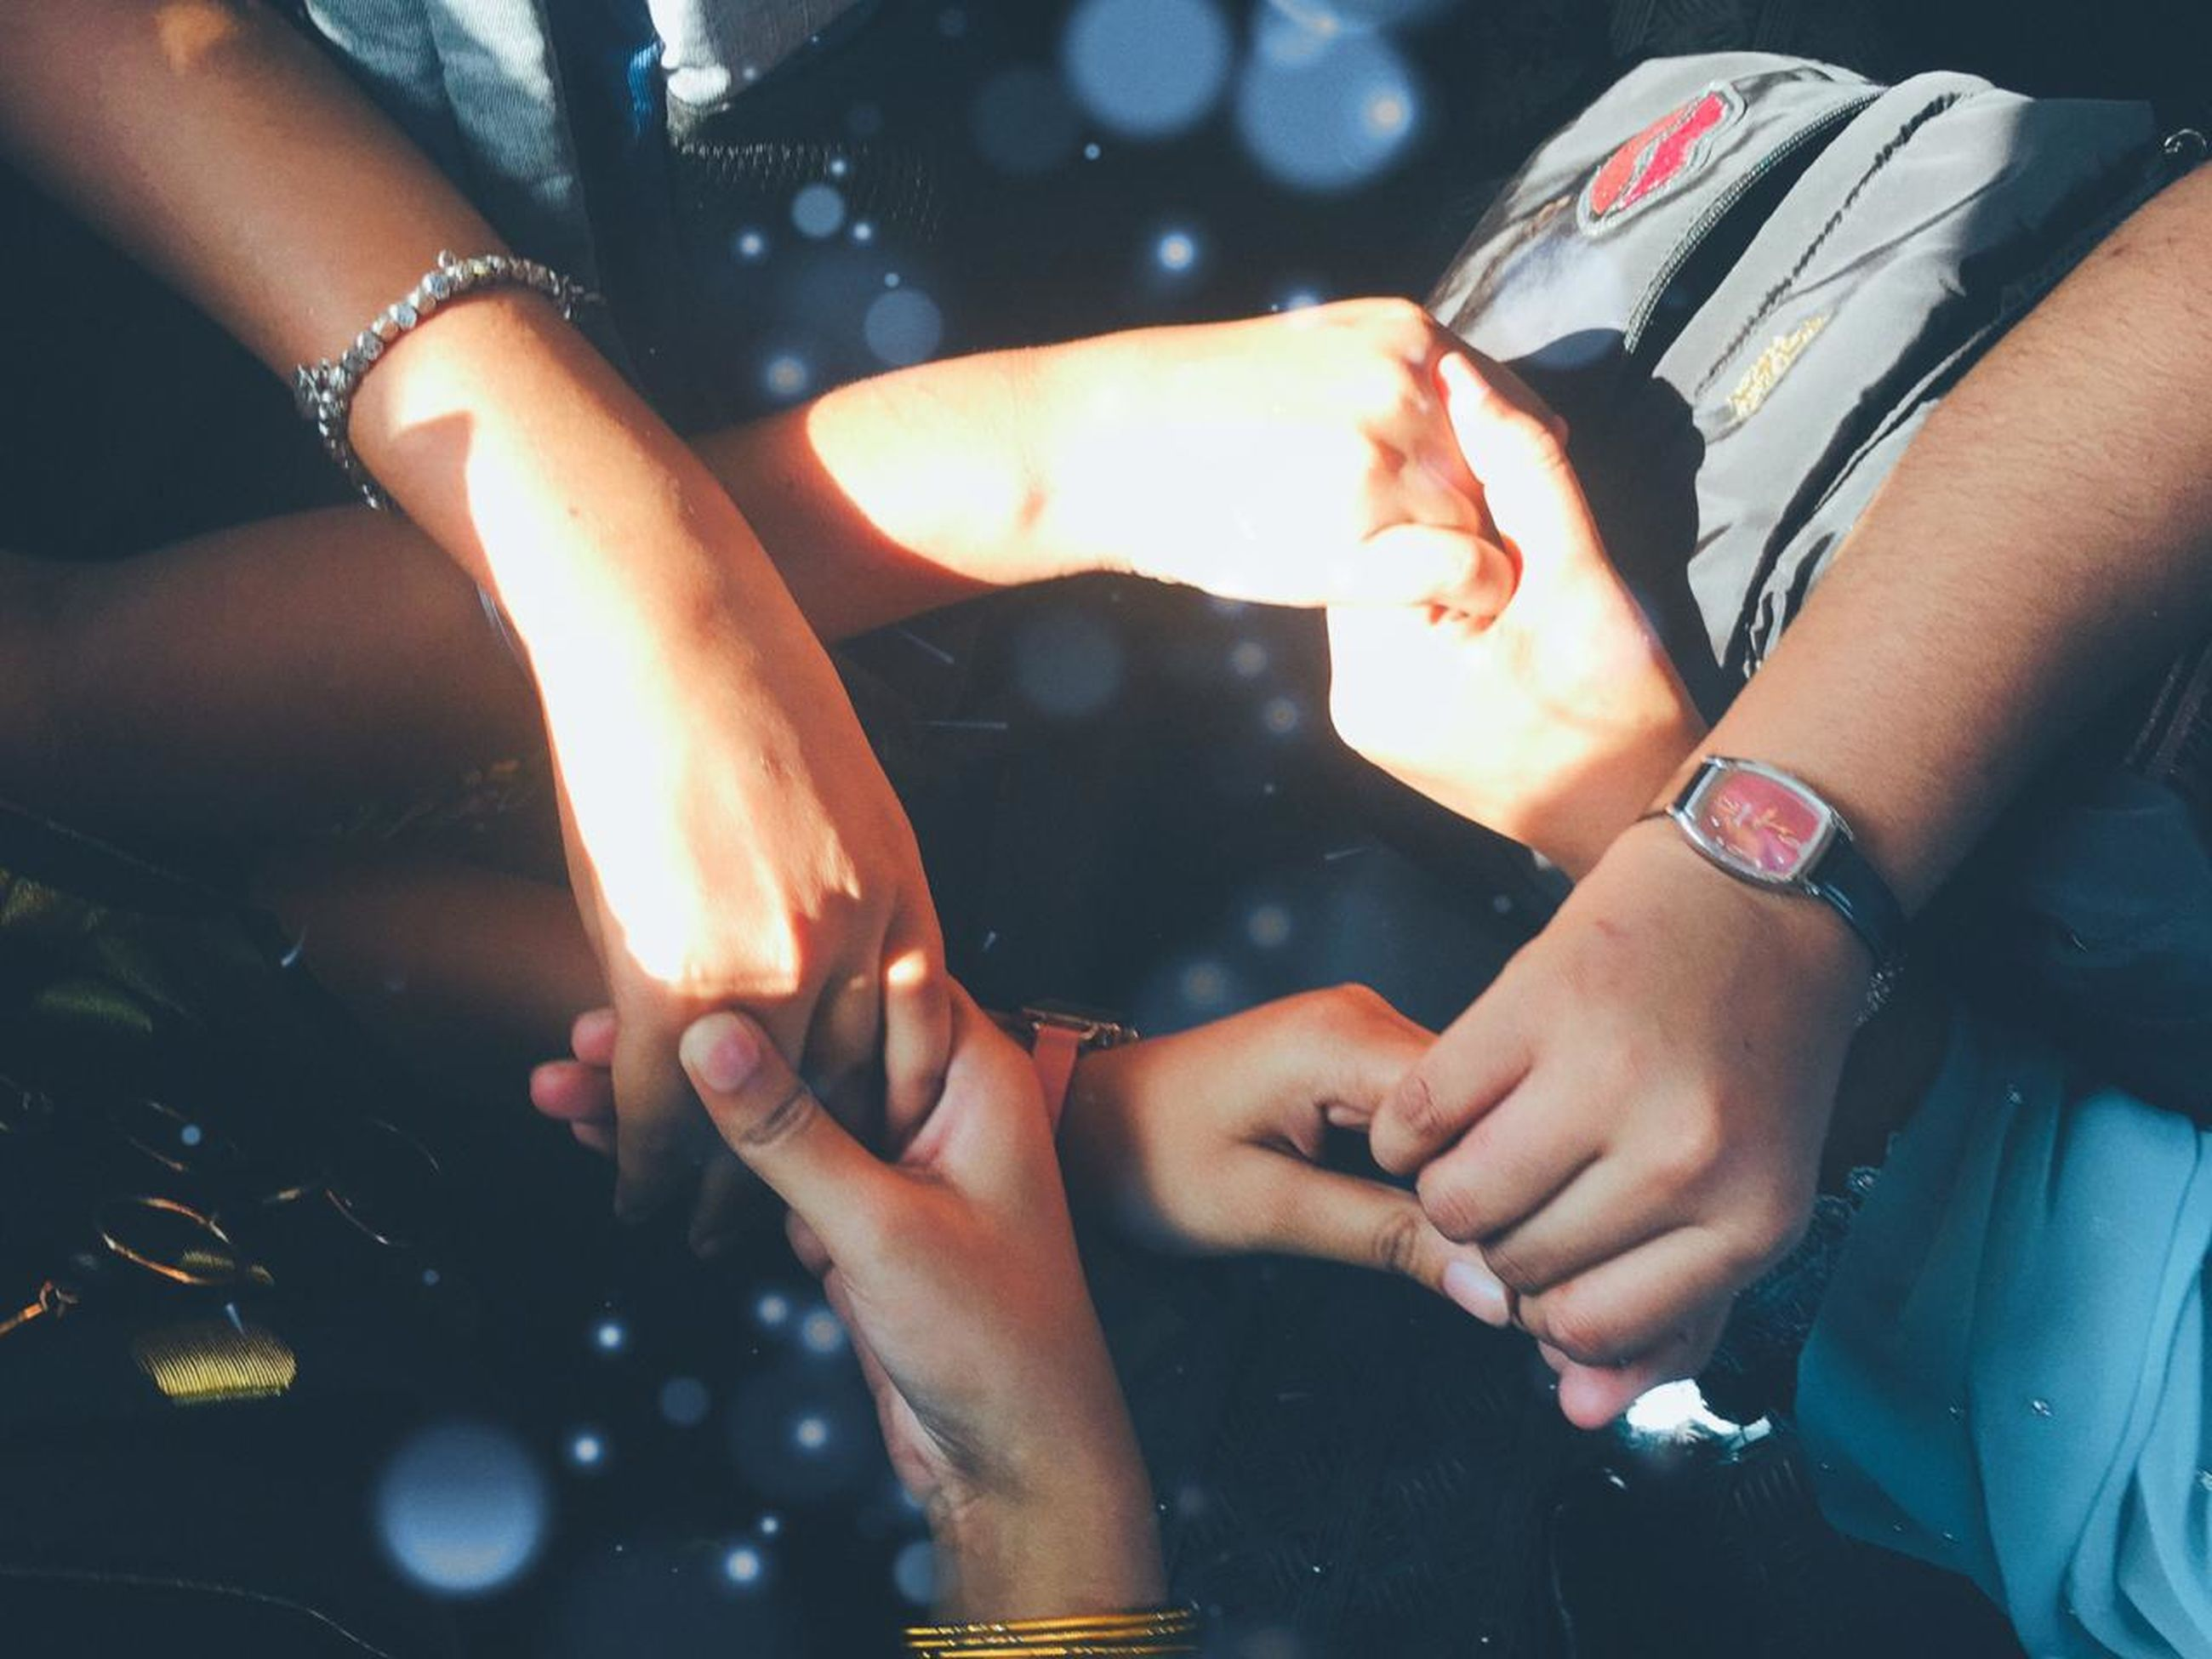 hand, adult, togetherness, event, women, two people, nail, celebration, lifestyles, finger, night, friendship, watch, men, bracelet, emotion, arts culture and entertainment, close-up, fun, food and drink, party, nature, indoors